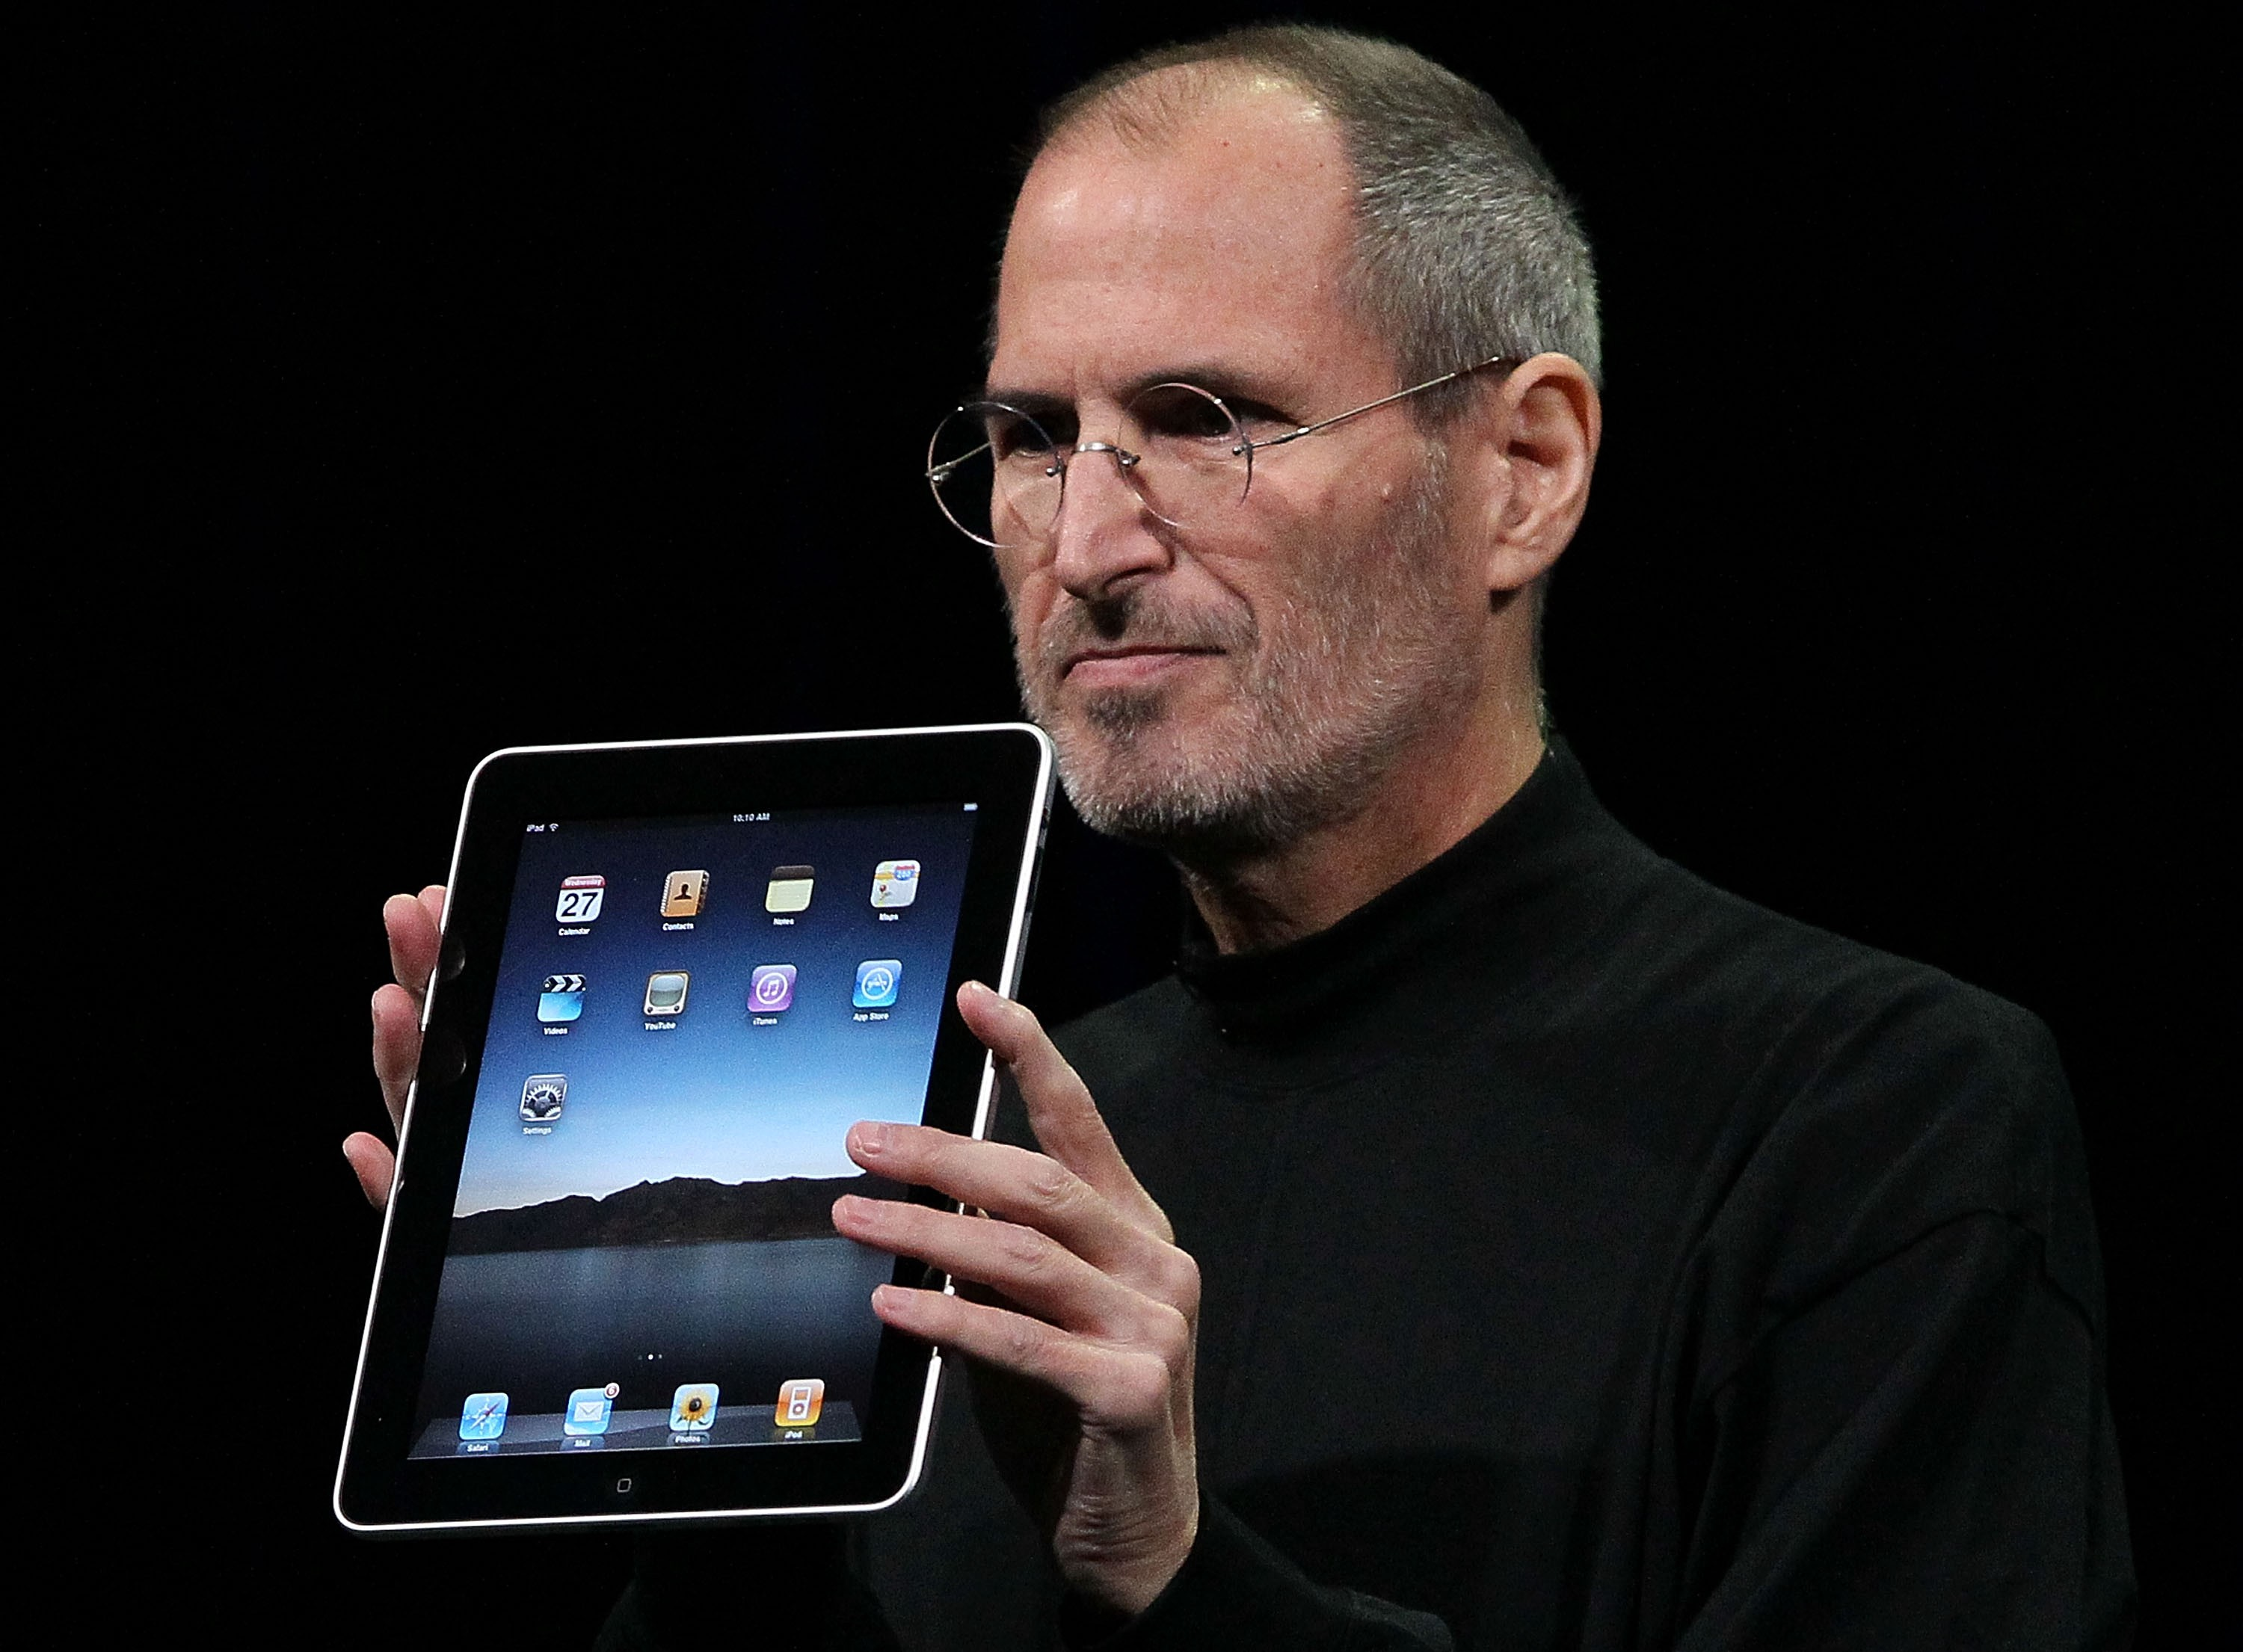 All iPad keynotes since the iPad inception! (With videos)